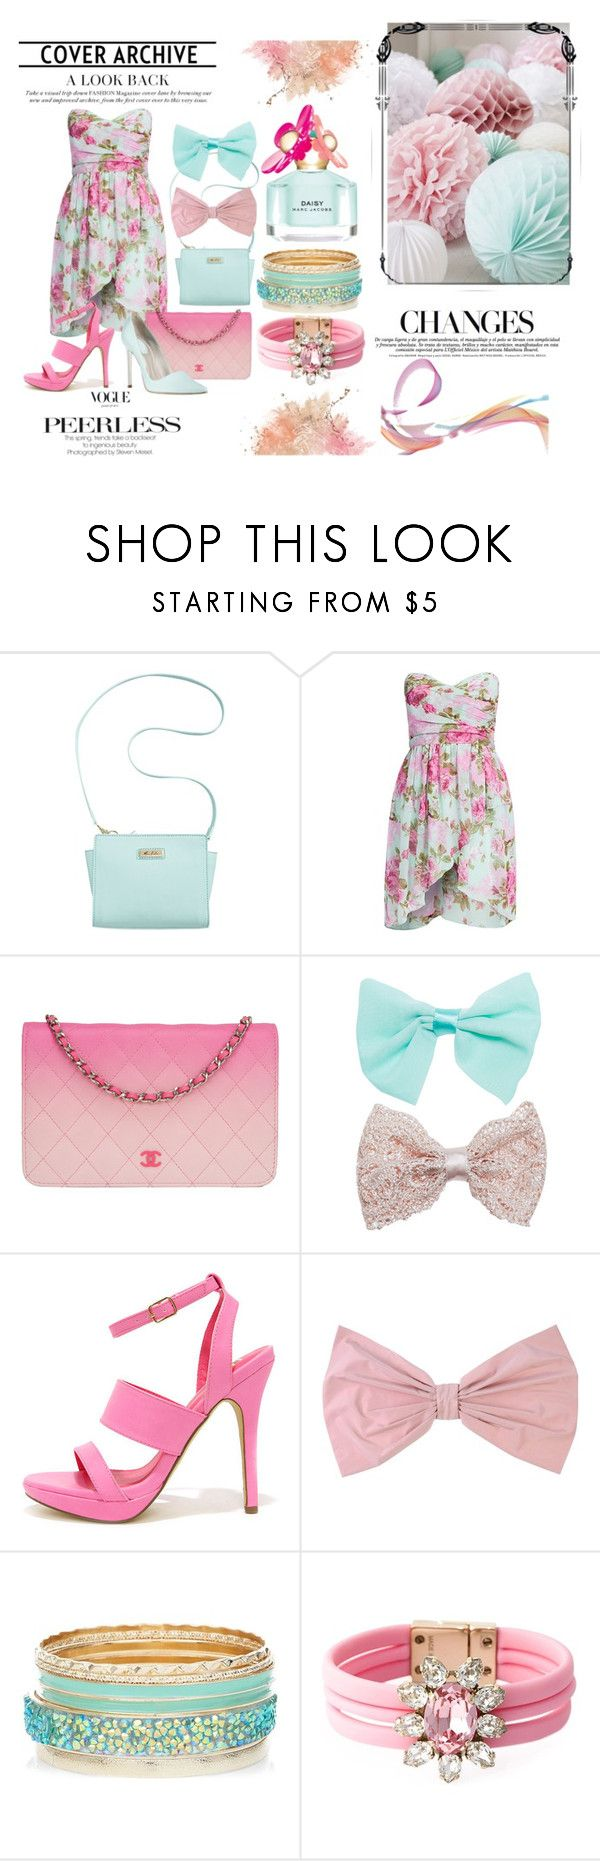 Pinky-mint combo by iris234 on Polyvore featuring Fahrenheit, Marc Fisher, Chanel, SHOUROUK, Wet Seal, PINK BOW and Marc Jacobs